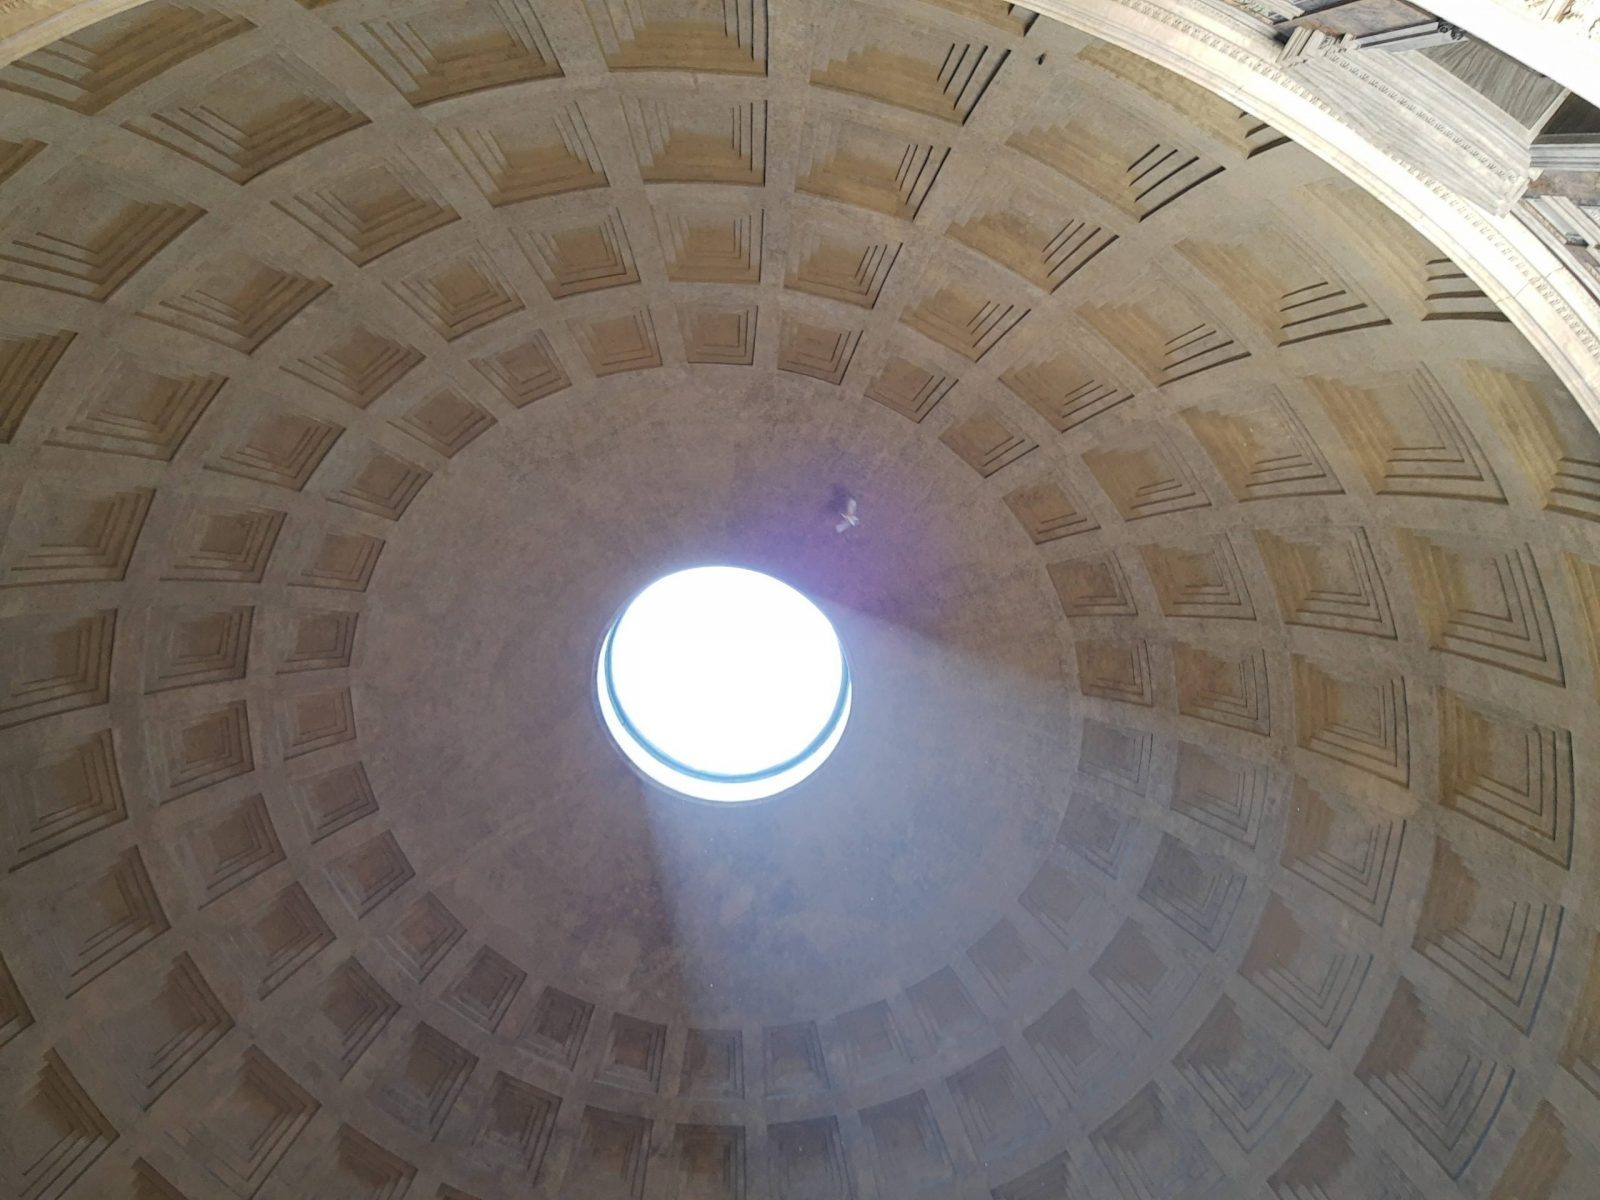 A picture of the Pantheon Dome from inside